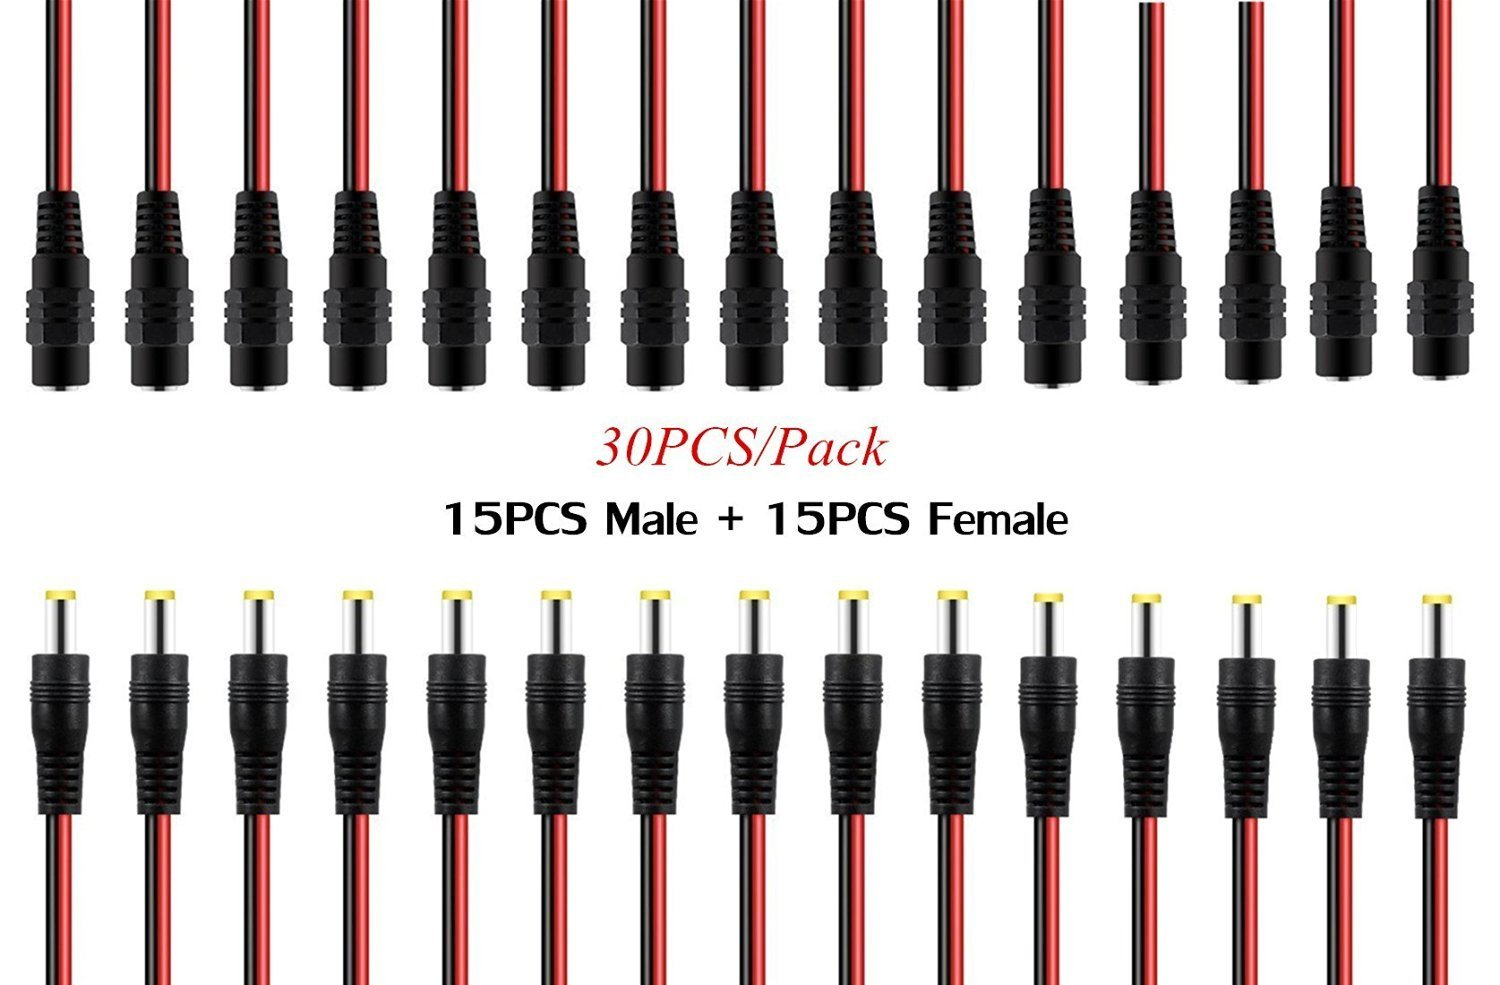 OdiySurveil(TM) 30PCS 10 Inch(30cm) 2.1 x 5.5mm DC Power Pigtail cable for CCTV Security Camera (Pack of 15 Male + 15 Female DC Plug cable )